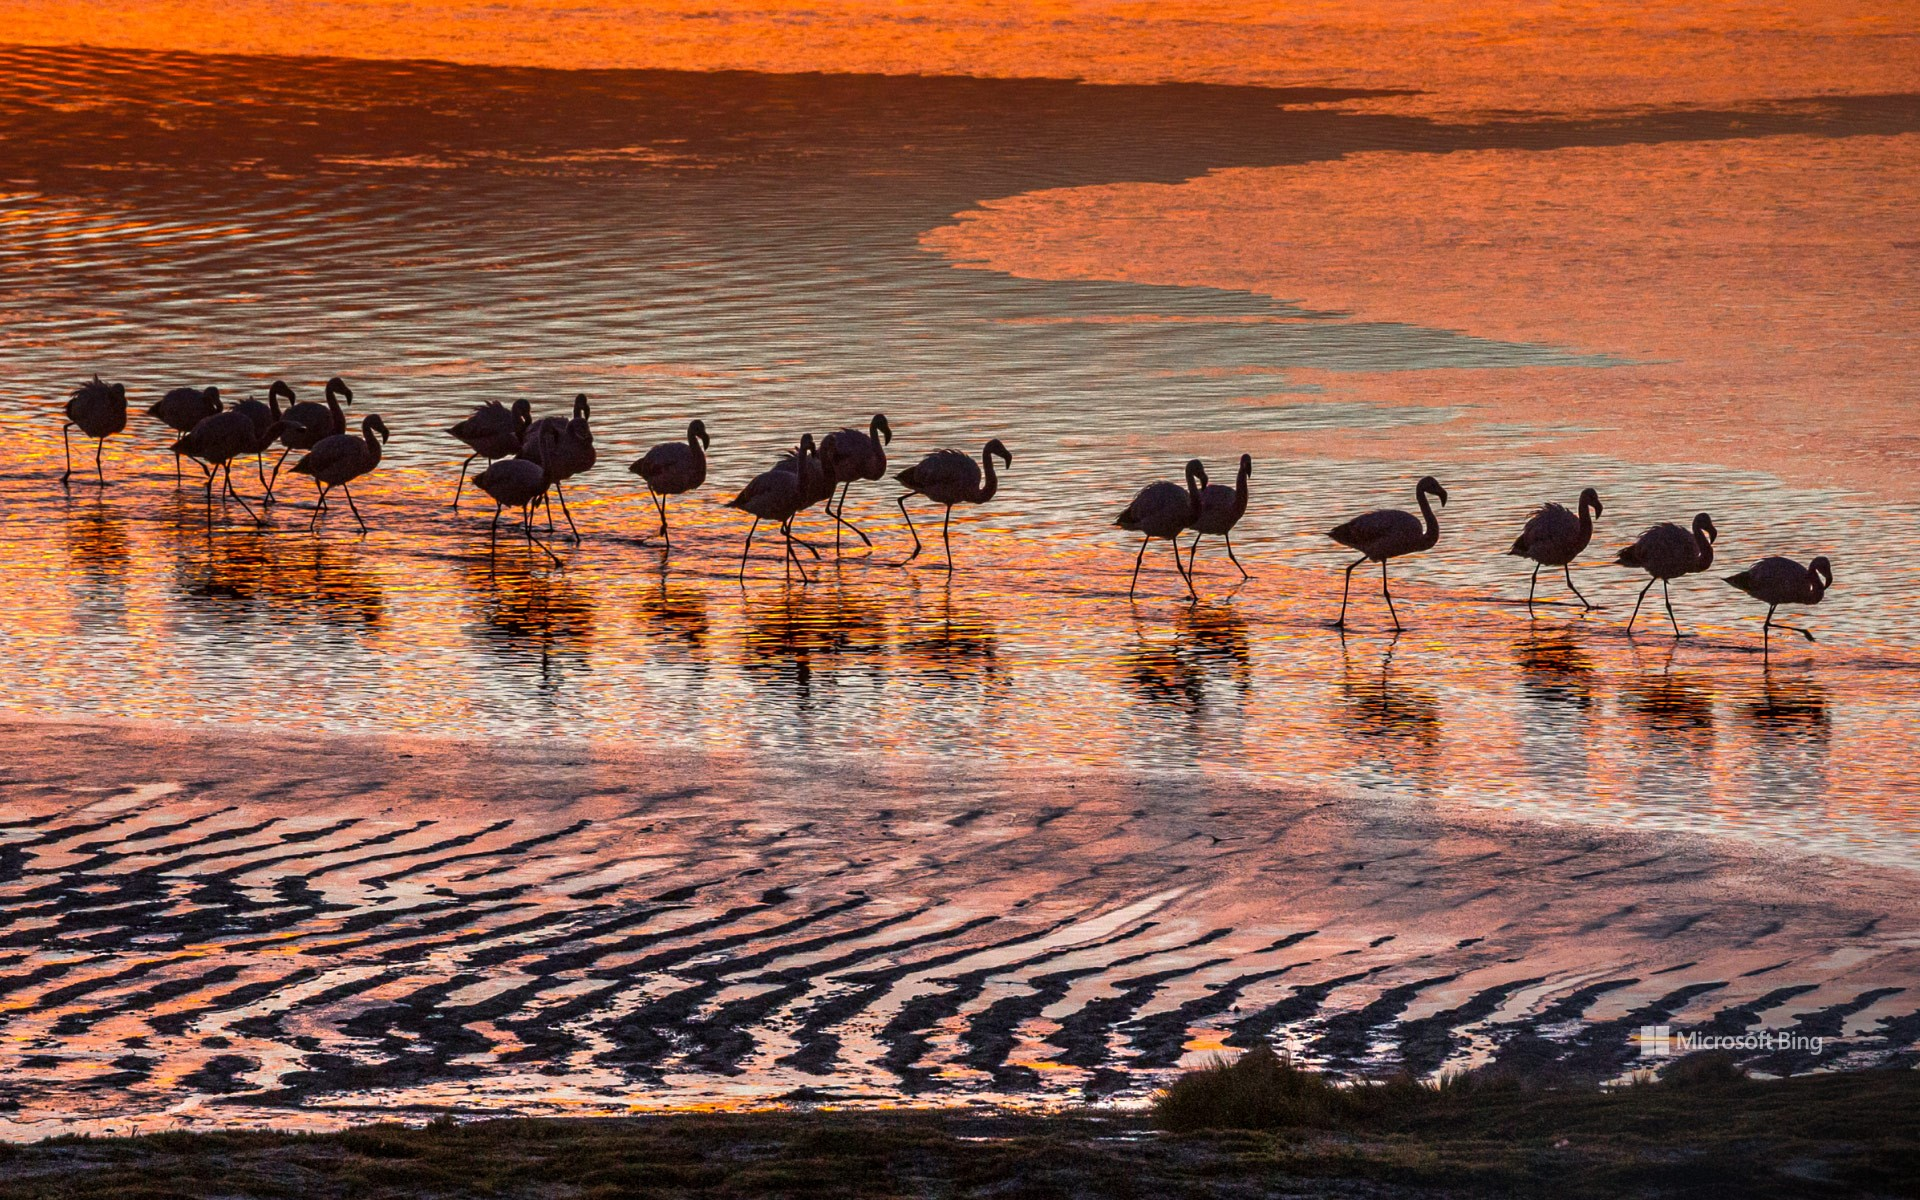 Flamingos in the Eduardo Avaroa Andean Fauna National Reserve in Bolivia